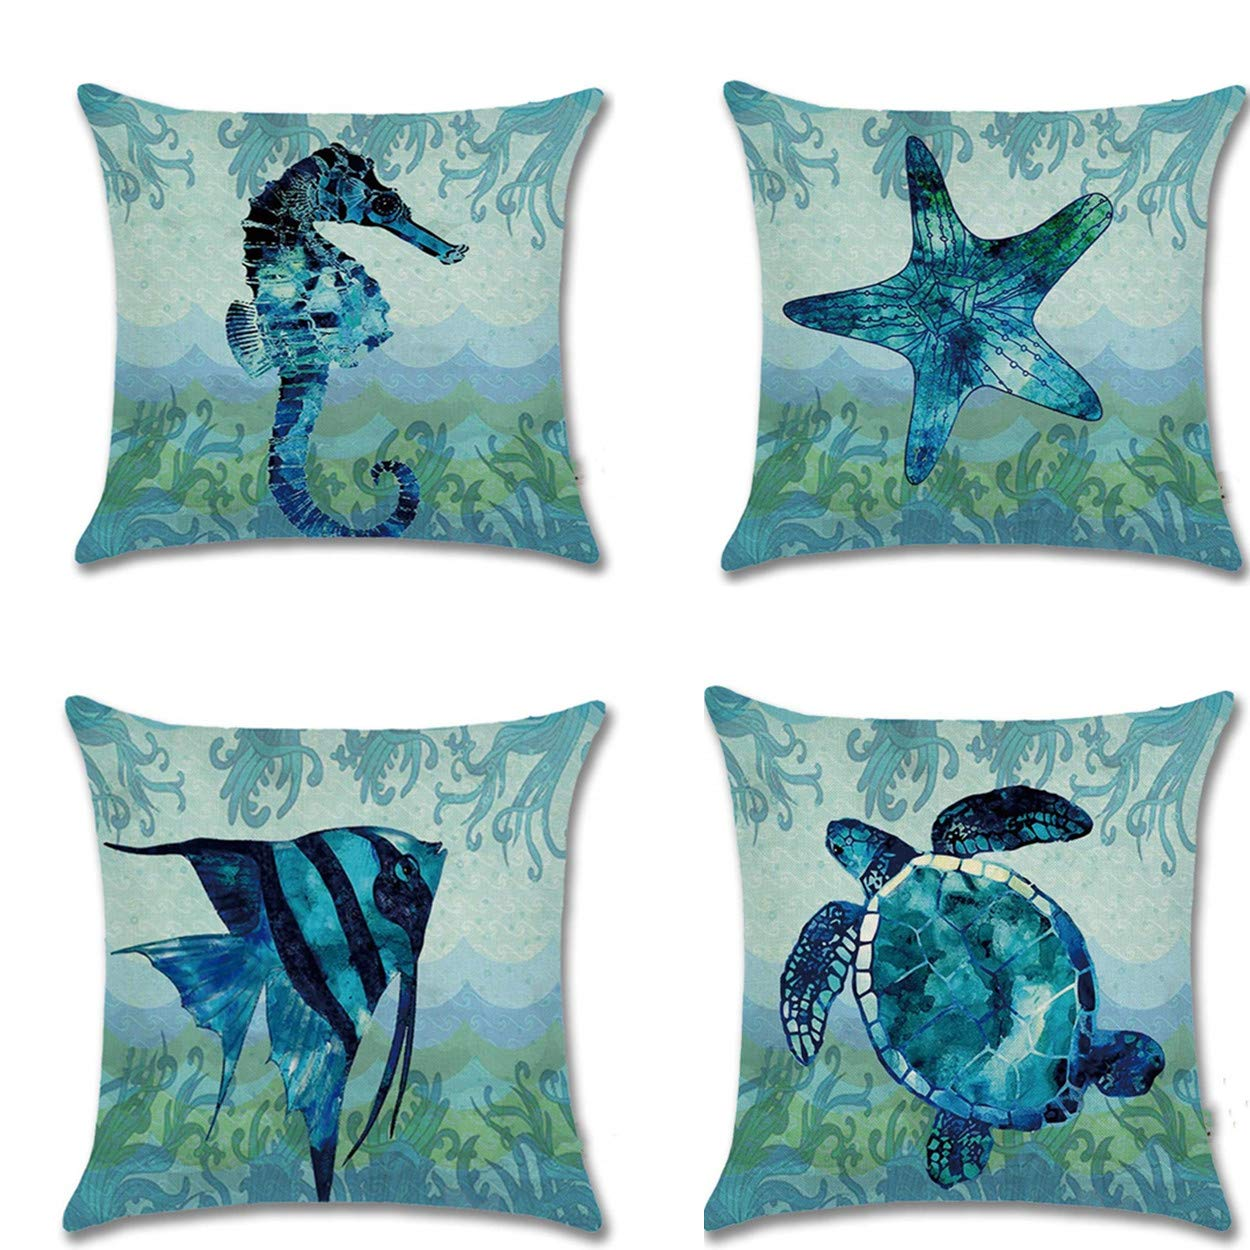 """Unibedding Beach Throw Pillow Case, Ocean Sea Theme Pillow Covers, Decorative Cotton Linen Coastal Cushion Cover, 4 Pack 18"""" X 18"""" forCouch Patio Furniture, Double Sides"""